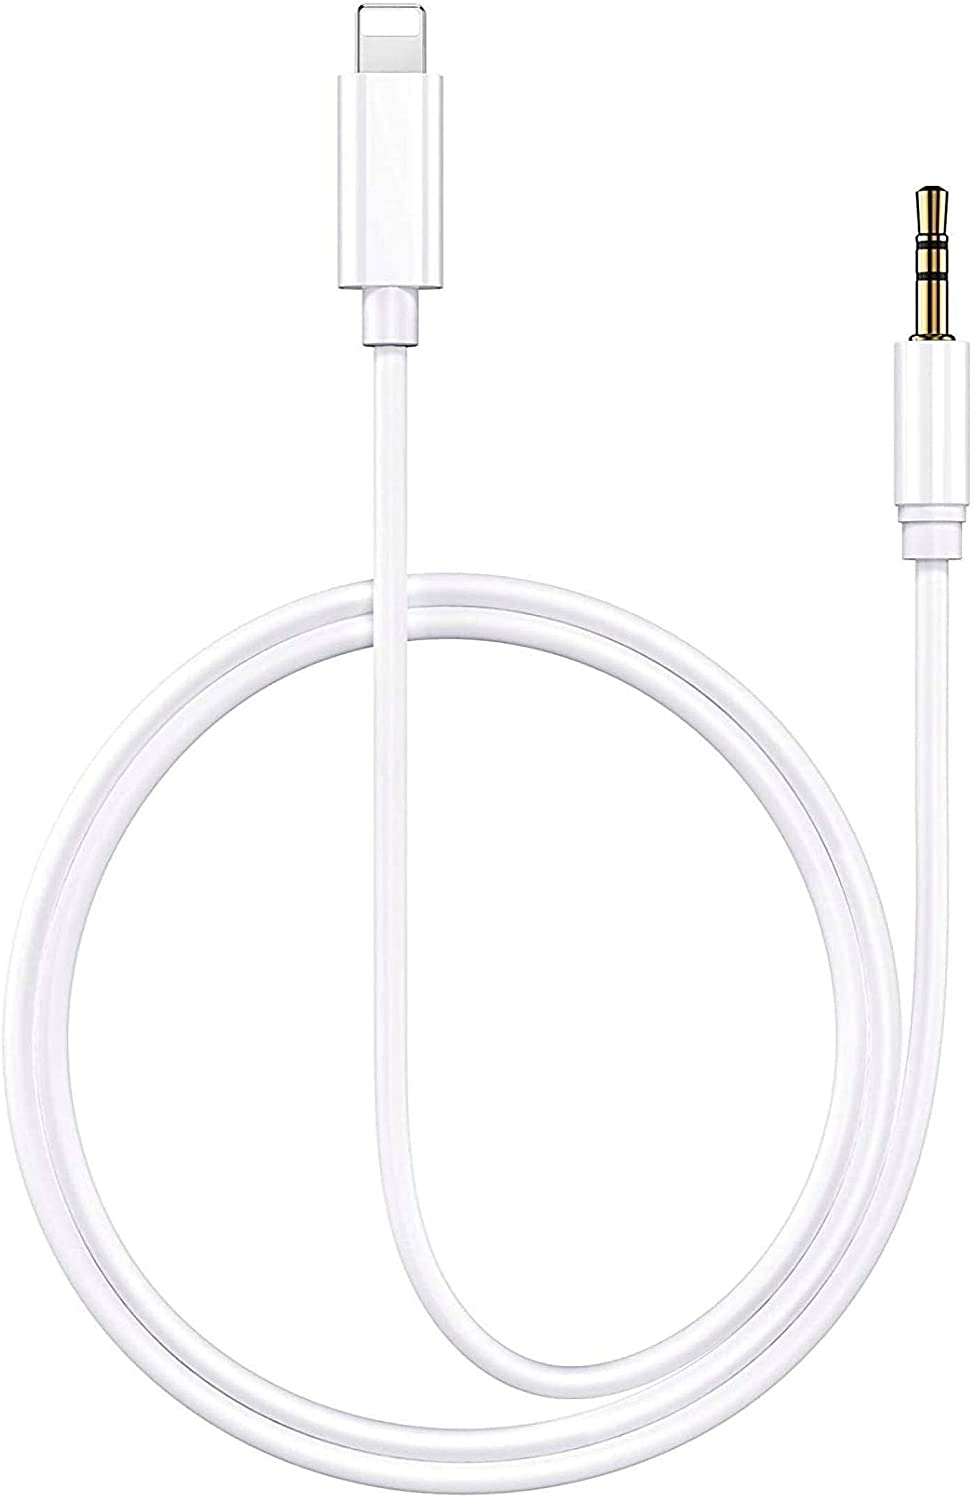 [Apple MFi Certified] iPhone Aux Cord for Car, Lightning to 3.5 mm Headphone Jack Adapter Male Aux Stereo Audio Cable Compatible with iPhone SE/11/11 Pro/XS/XR/X 8 7 iPad/iPod (3.3FT White)